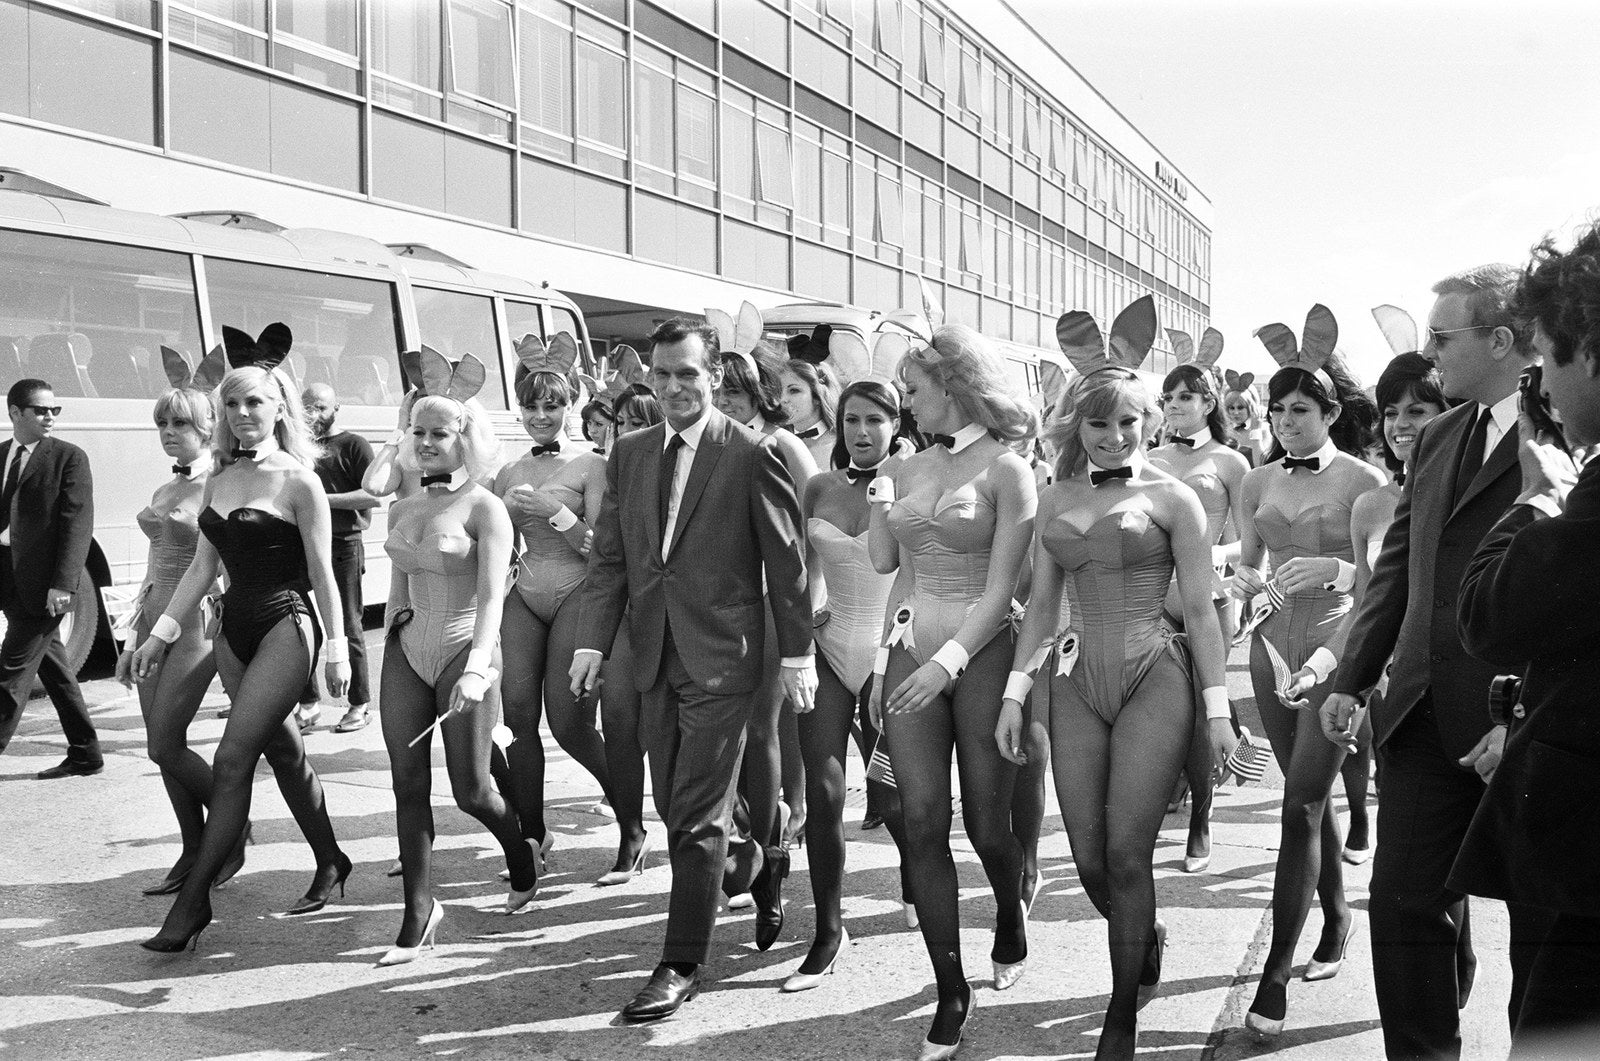 Hefner arrives with an entourage of Bunnies at London Heathrow Airport on June 25, 1966. During this trip to Britain, he opened his 16th Playboy Club, located in Park Lane, London.